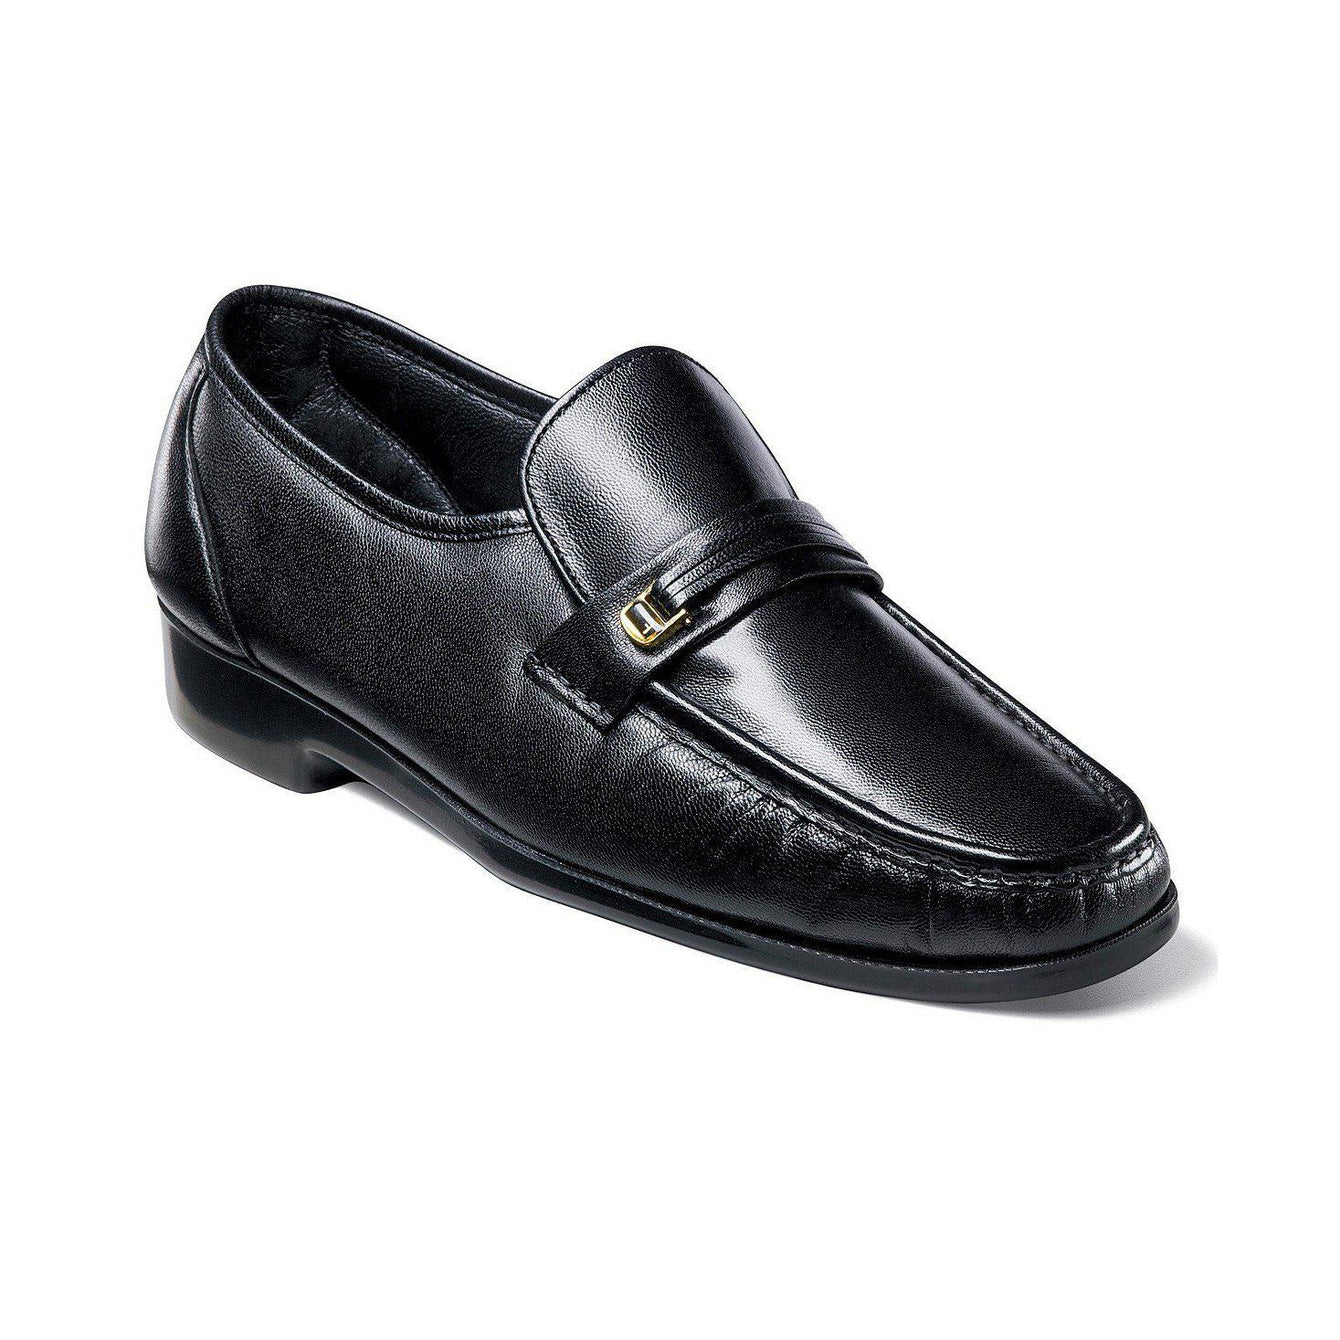 Florsheim Men's Riva Moc Toe Loafer  Florsheim  kick-it-shoe-outlet.myshopify.com Kick-it Shoe Outlet Shoes Cheap